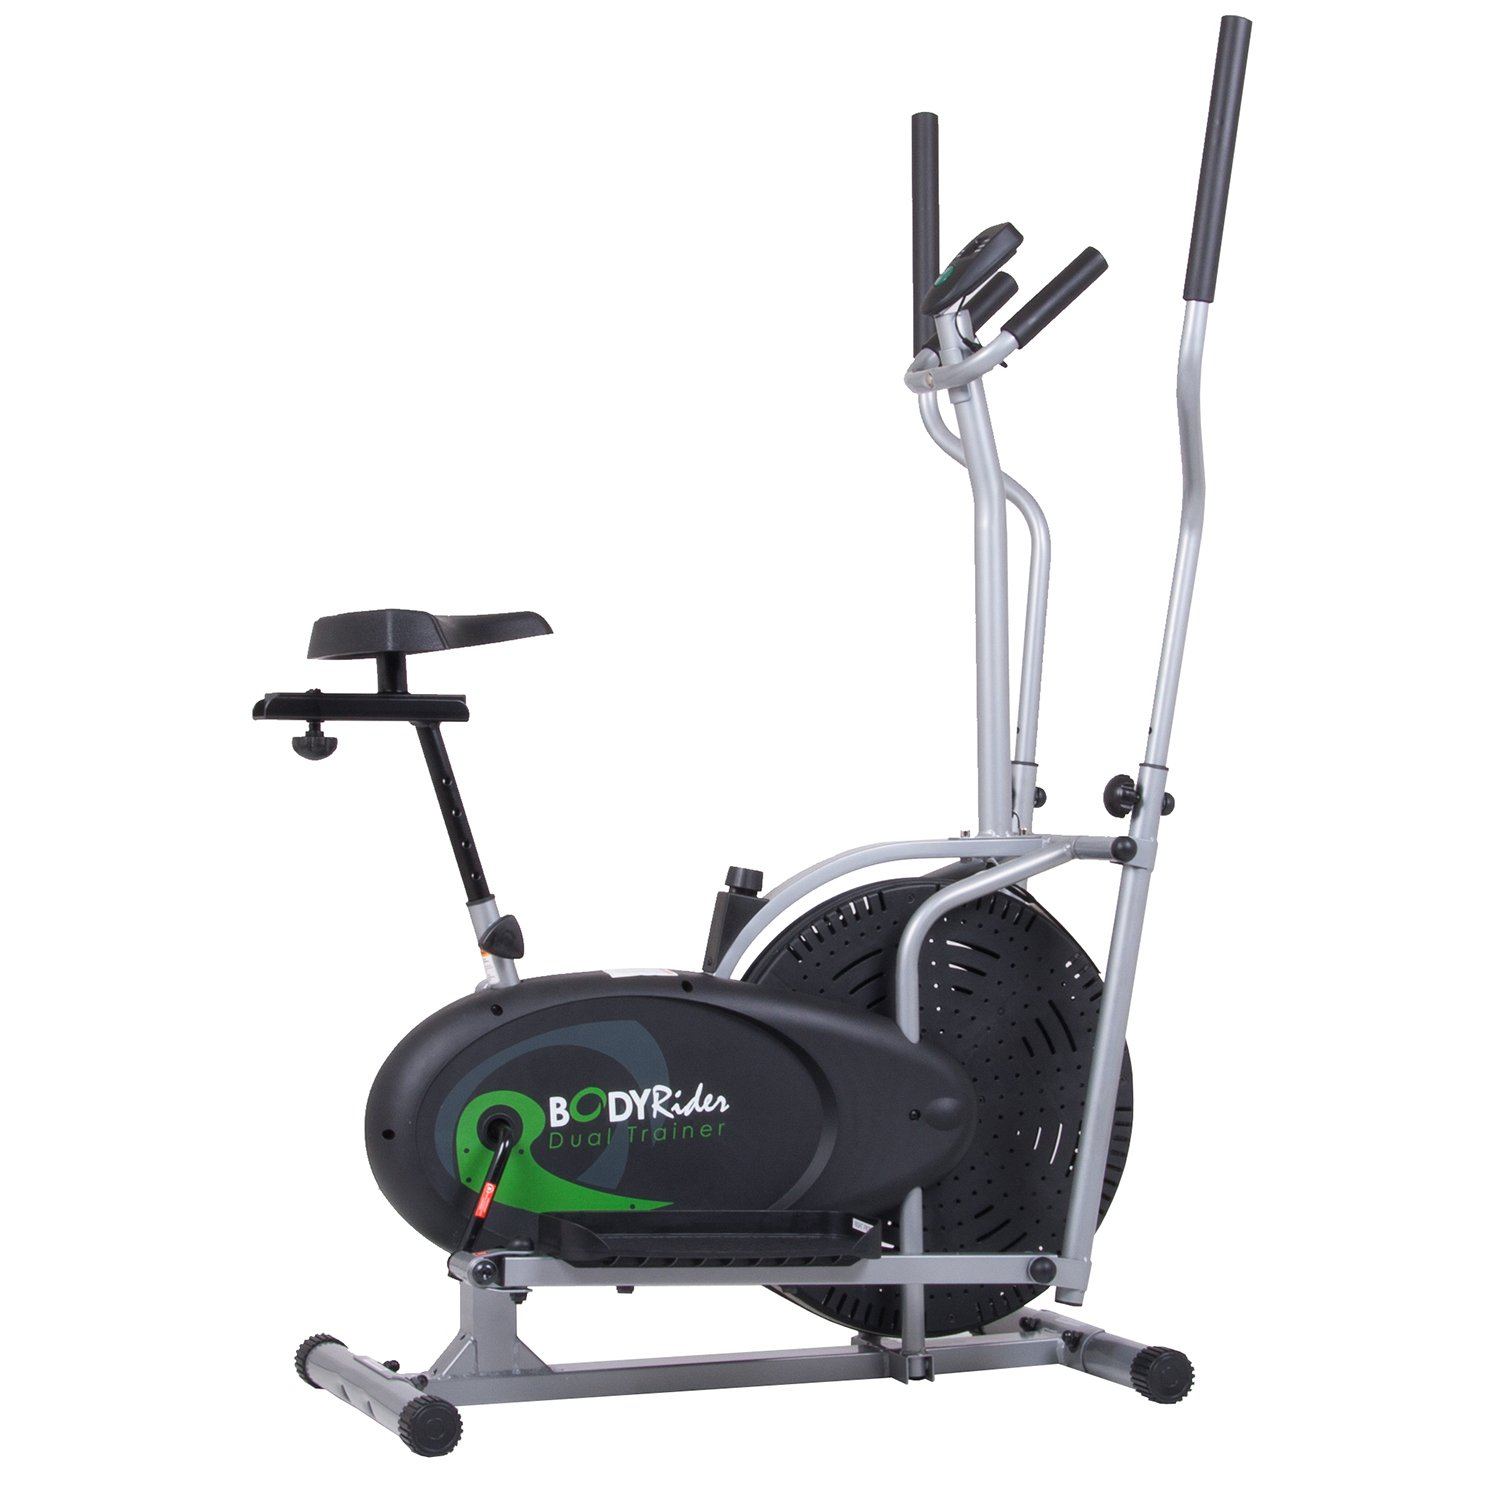 Body Rider BRD2000 Elliptical Trainer and Exercise Bike with Seat and Easy Computer / Dual Trainer 2 in 1  Cardio Home Office Fitness Workout Machine